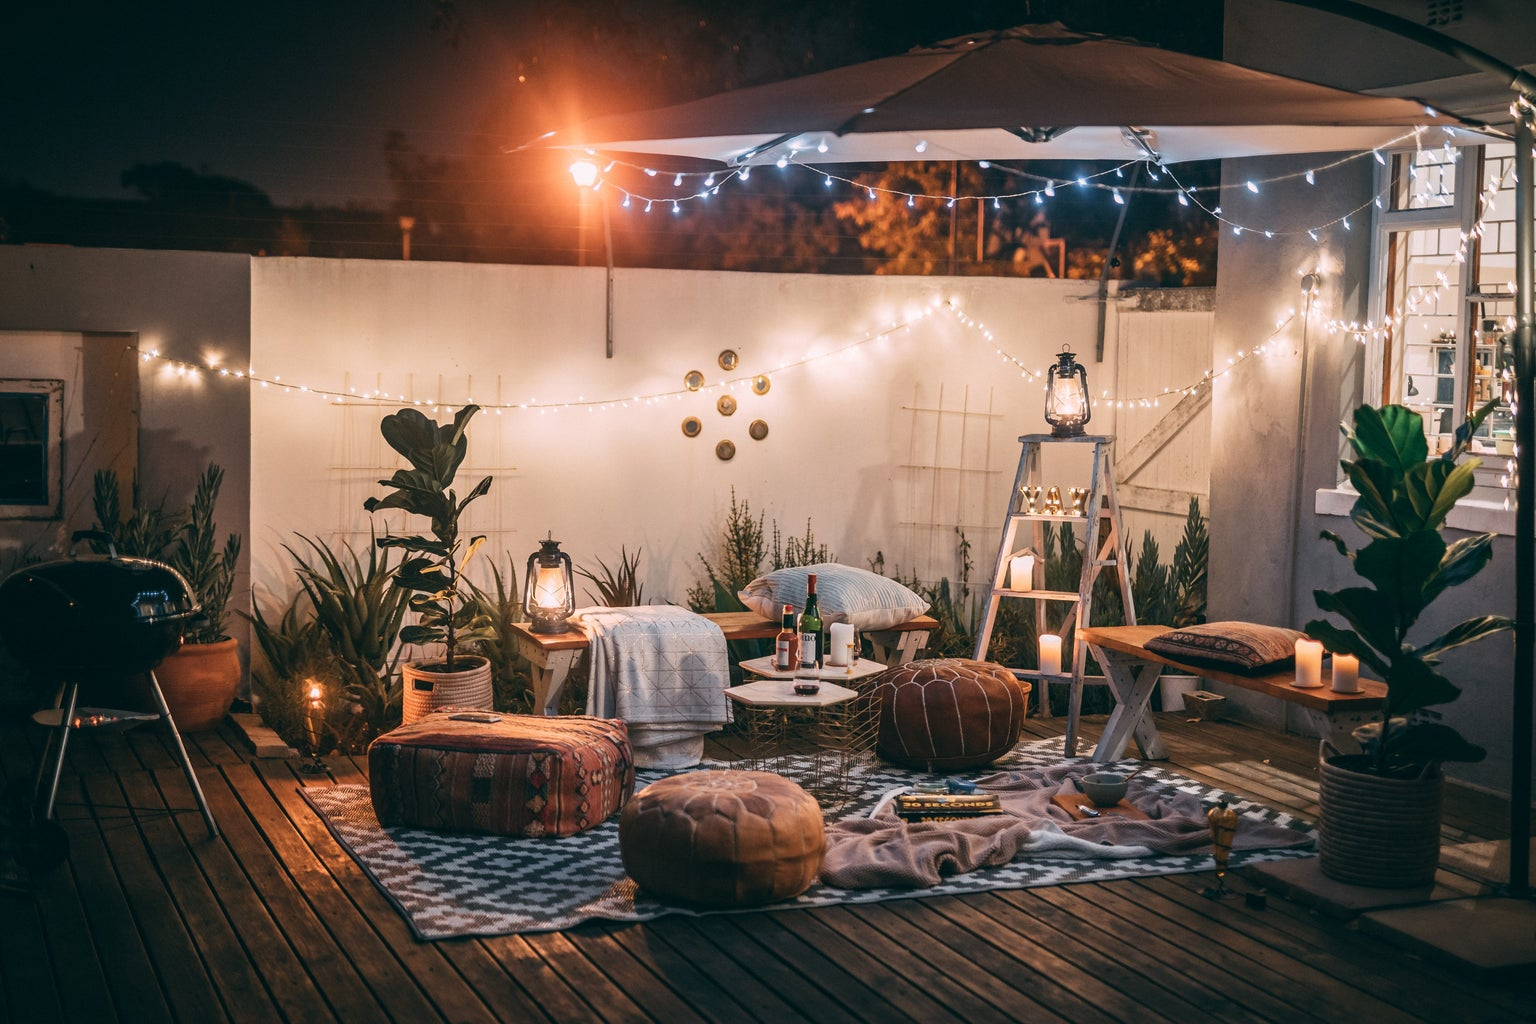 An outside setup with lots of cushions and some fairy lights. There are also plants everywhere and a small table that has drinks.